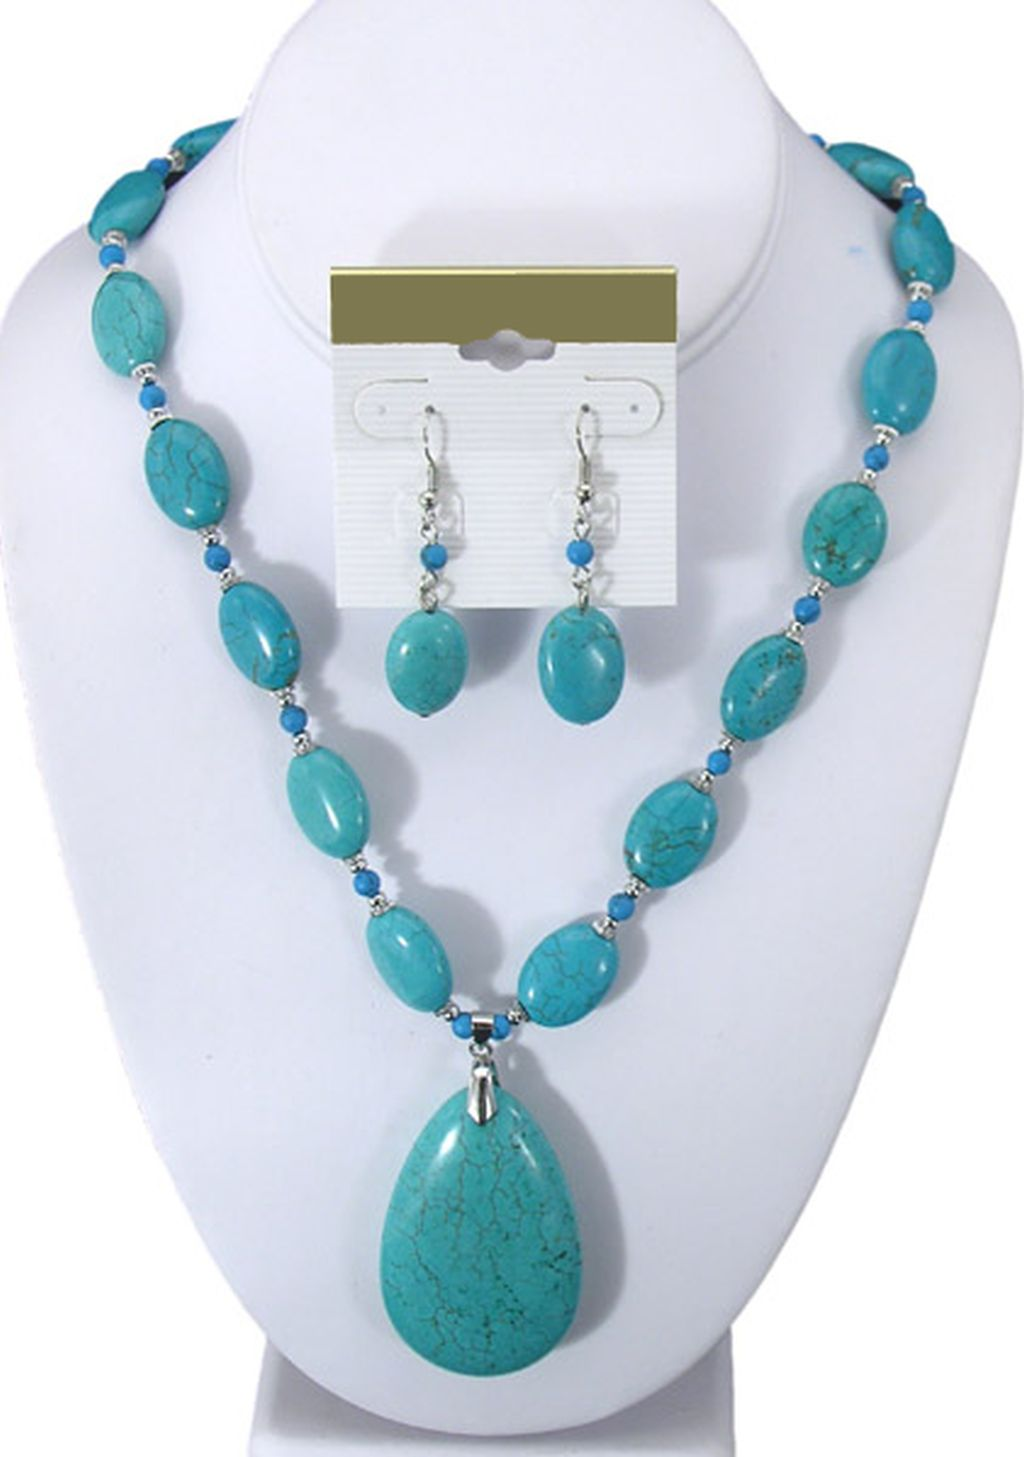 Turquoise Genuine Stones, Large Pendant, Set of Necklace & Earrings, Beads, Anti-allergic Metal